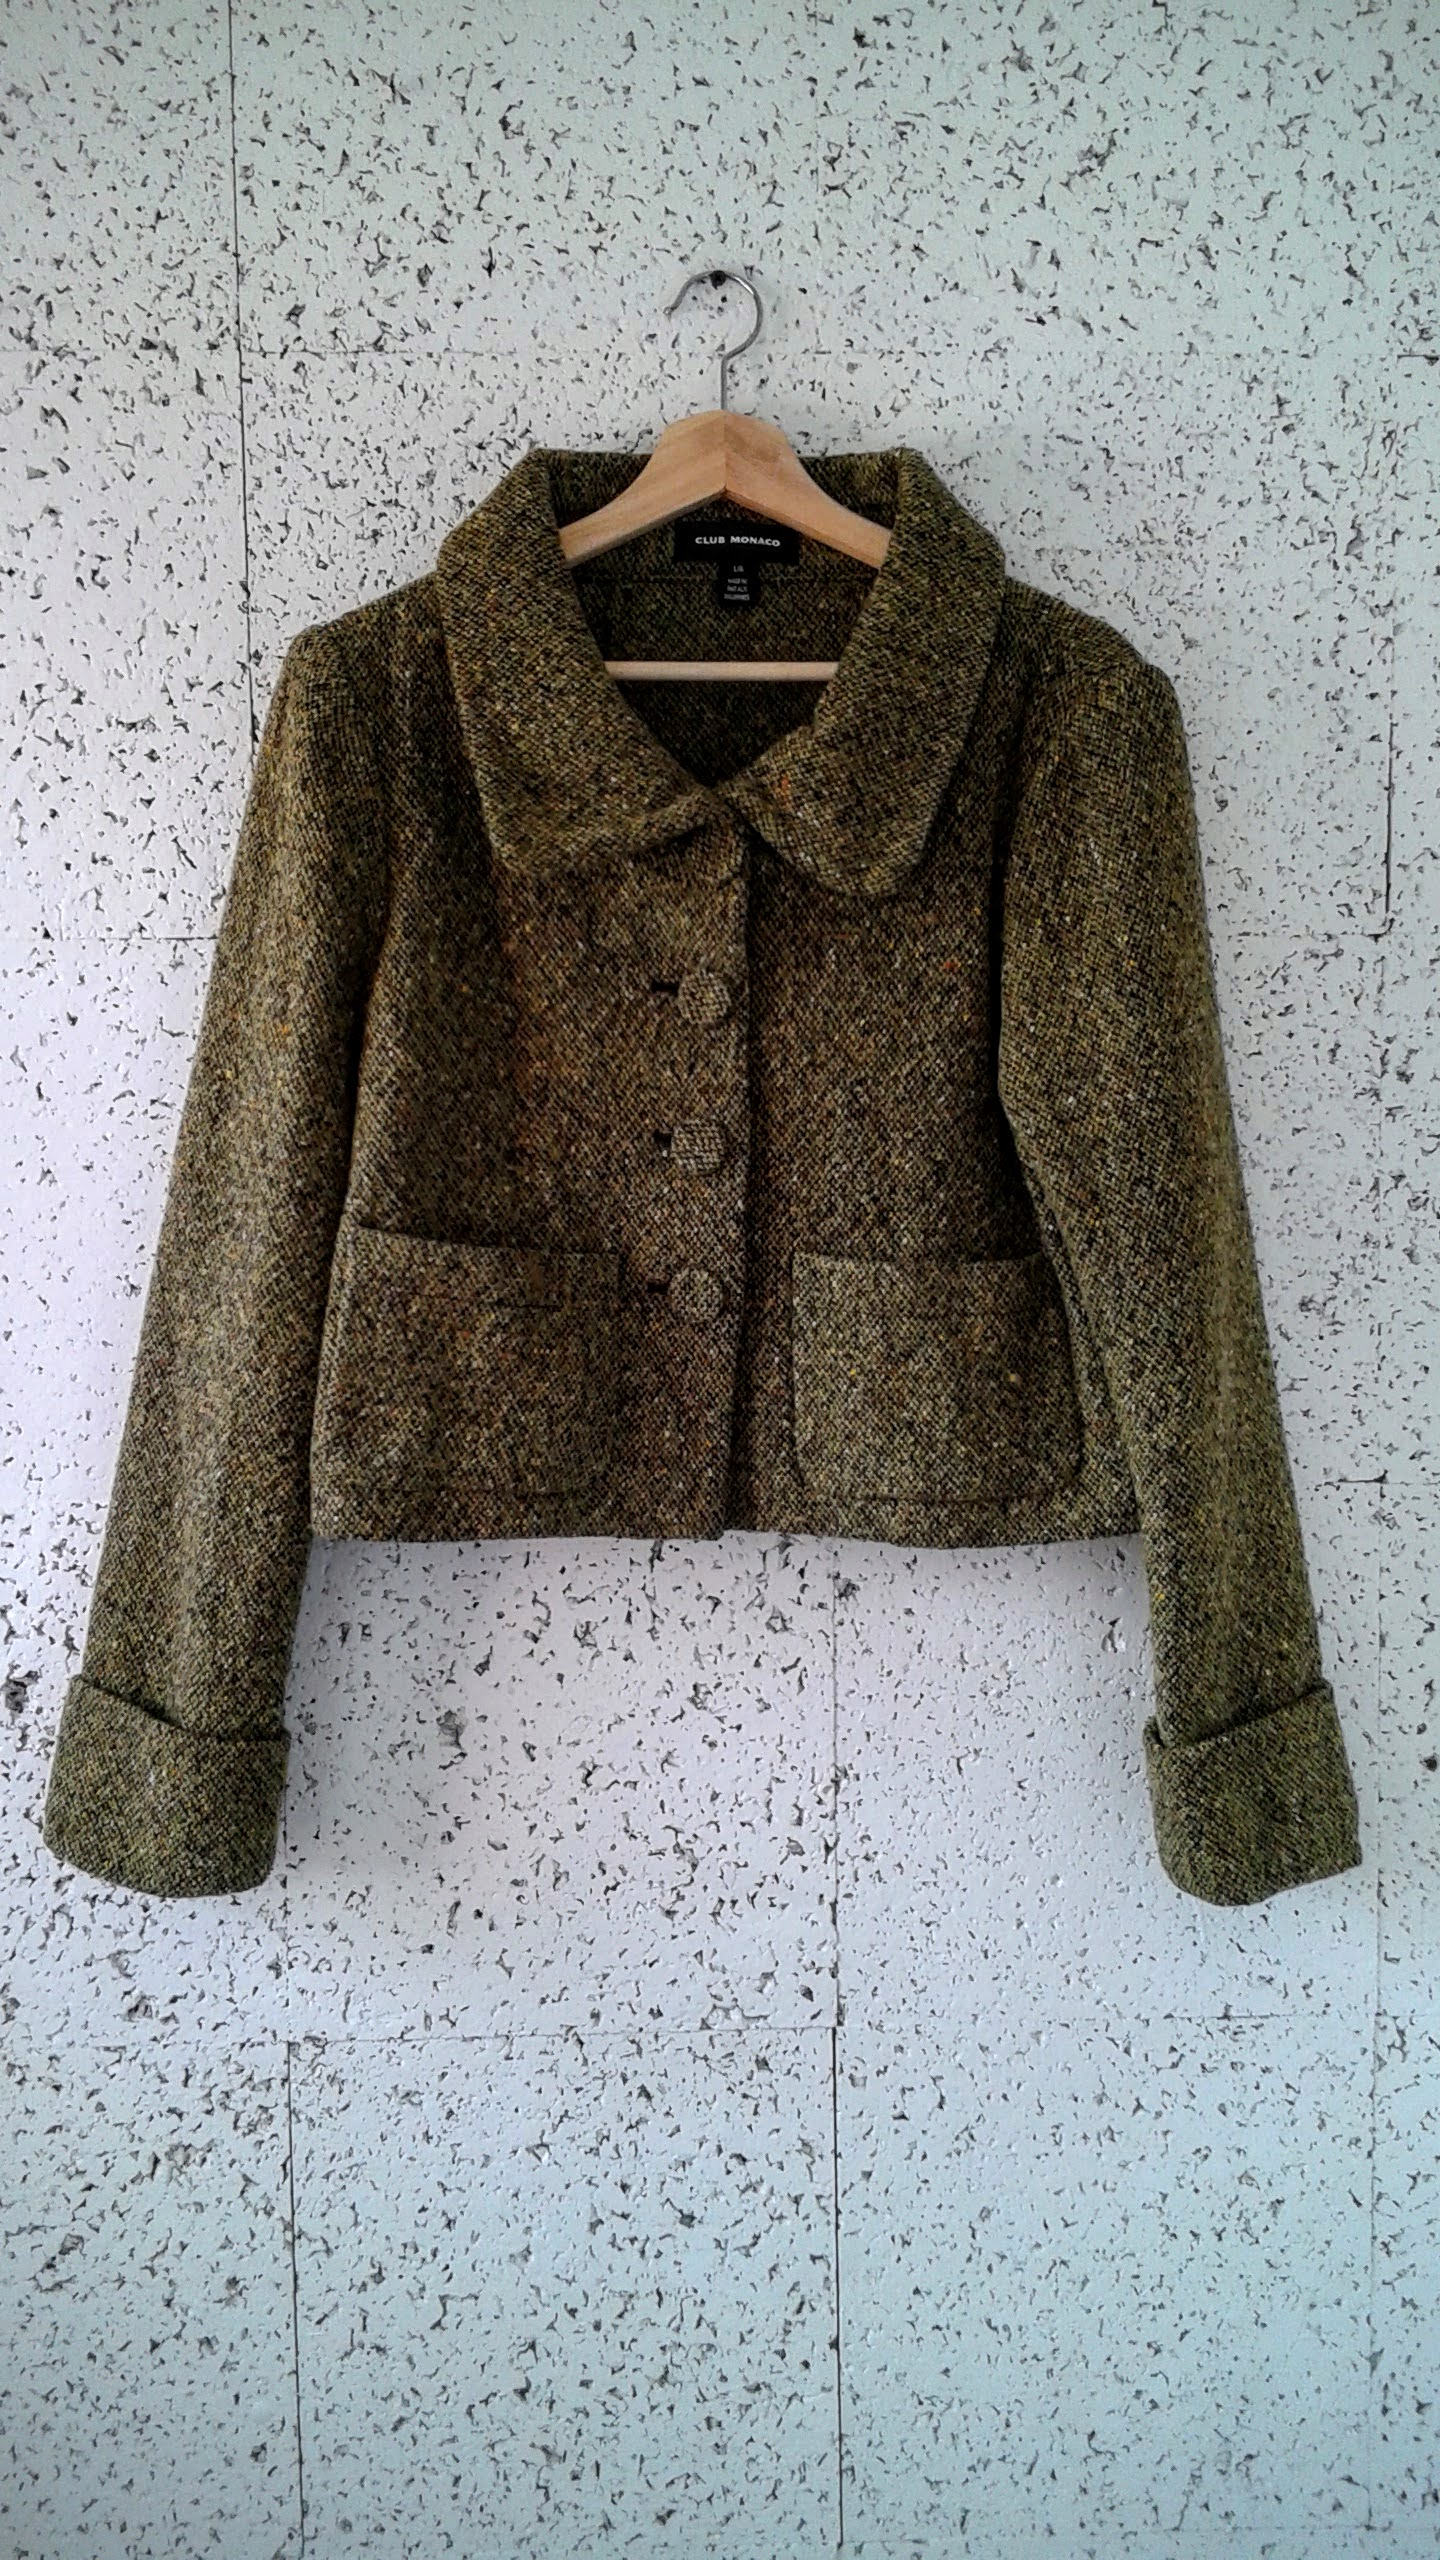 Club Monaco  coat; Size L, $52